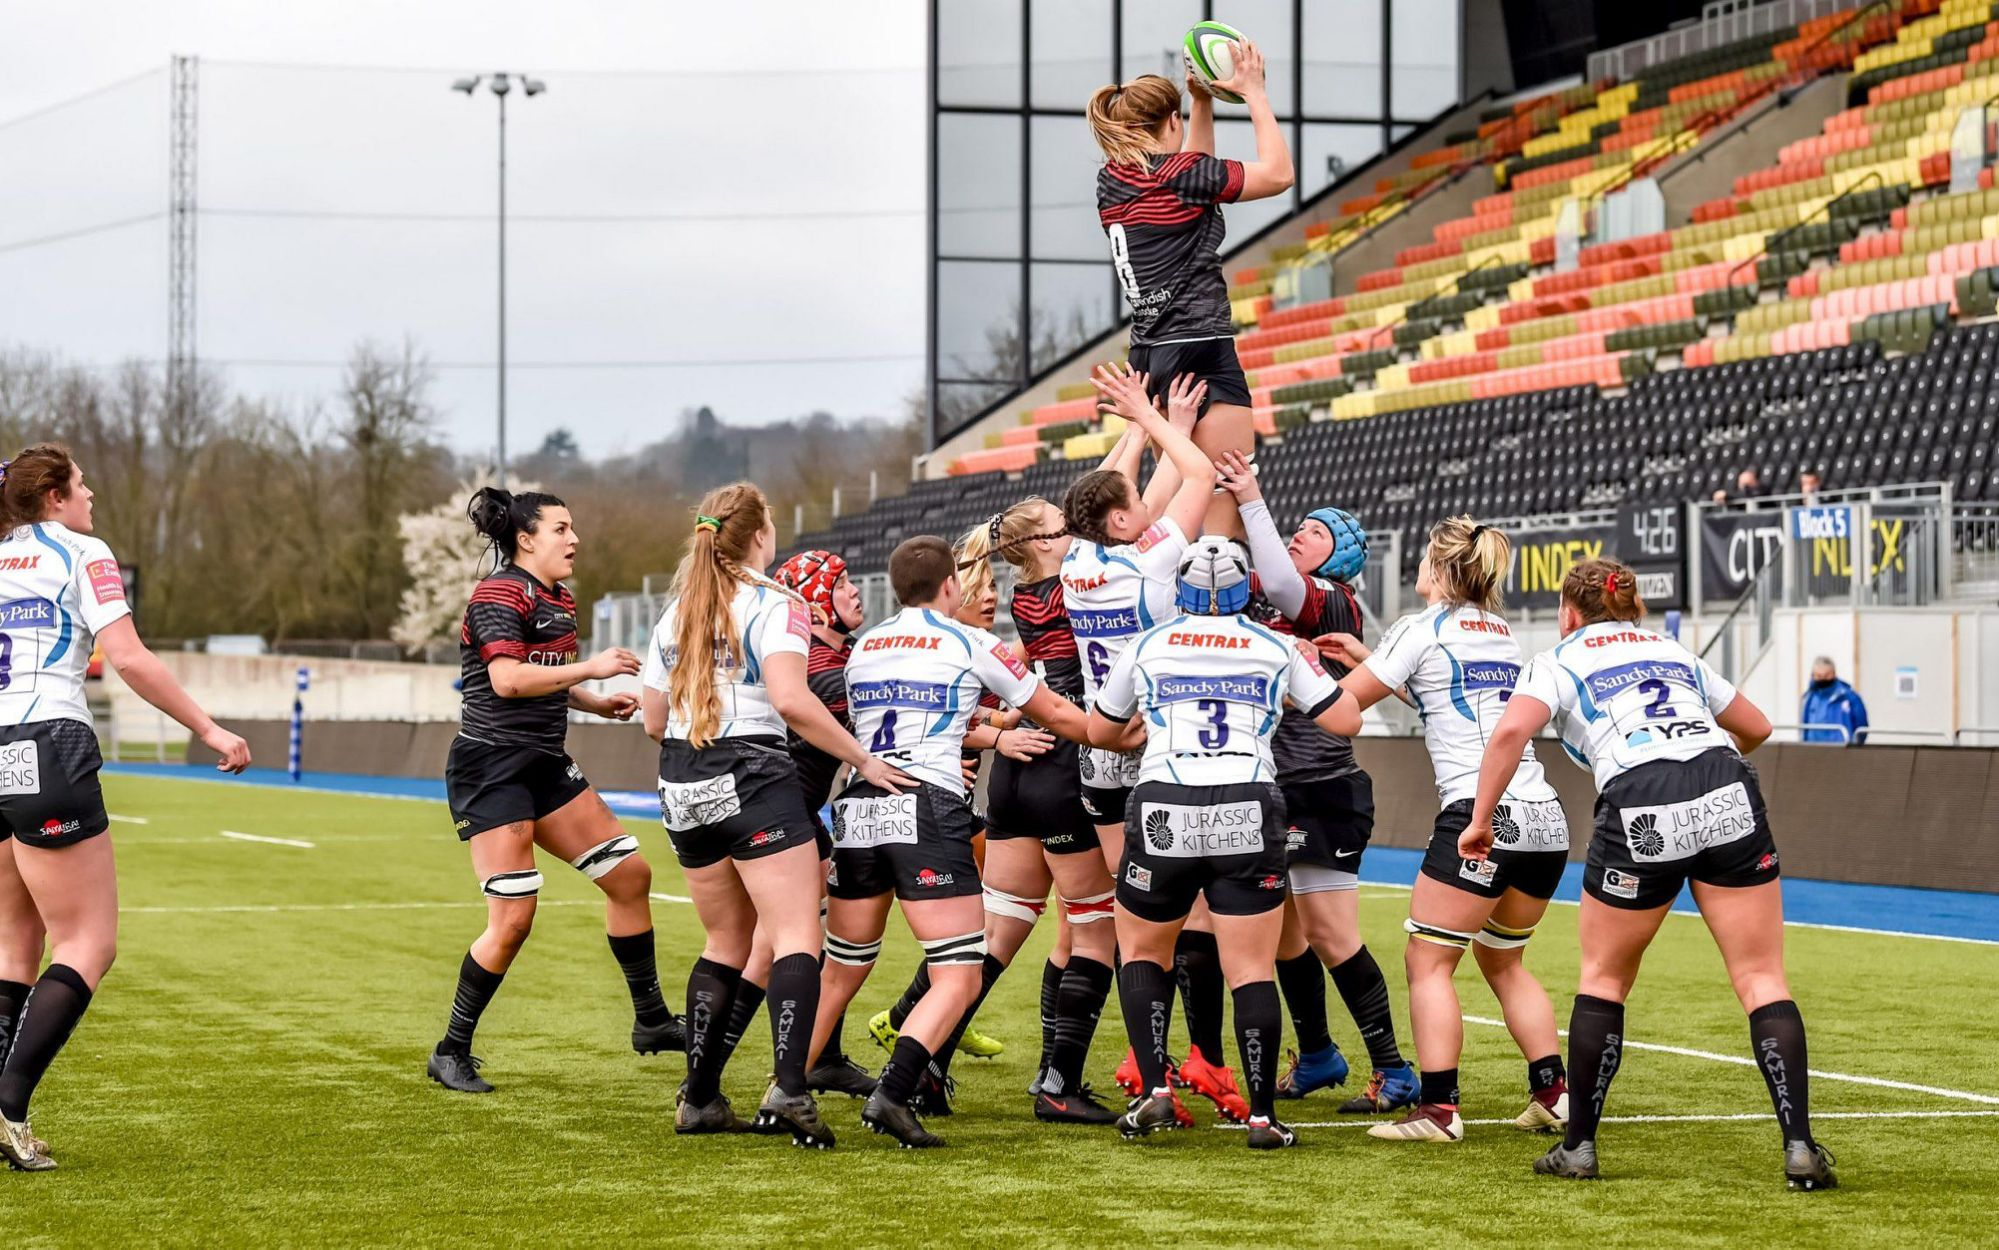 saracens-women-come-from-behind-to-end-exeter-chiefs'-seven-match-winning-run